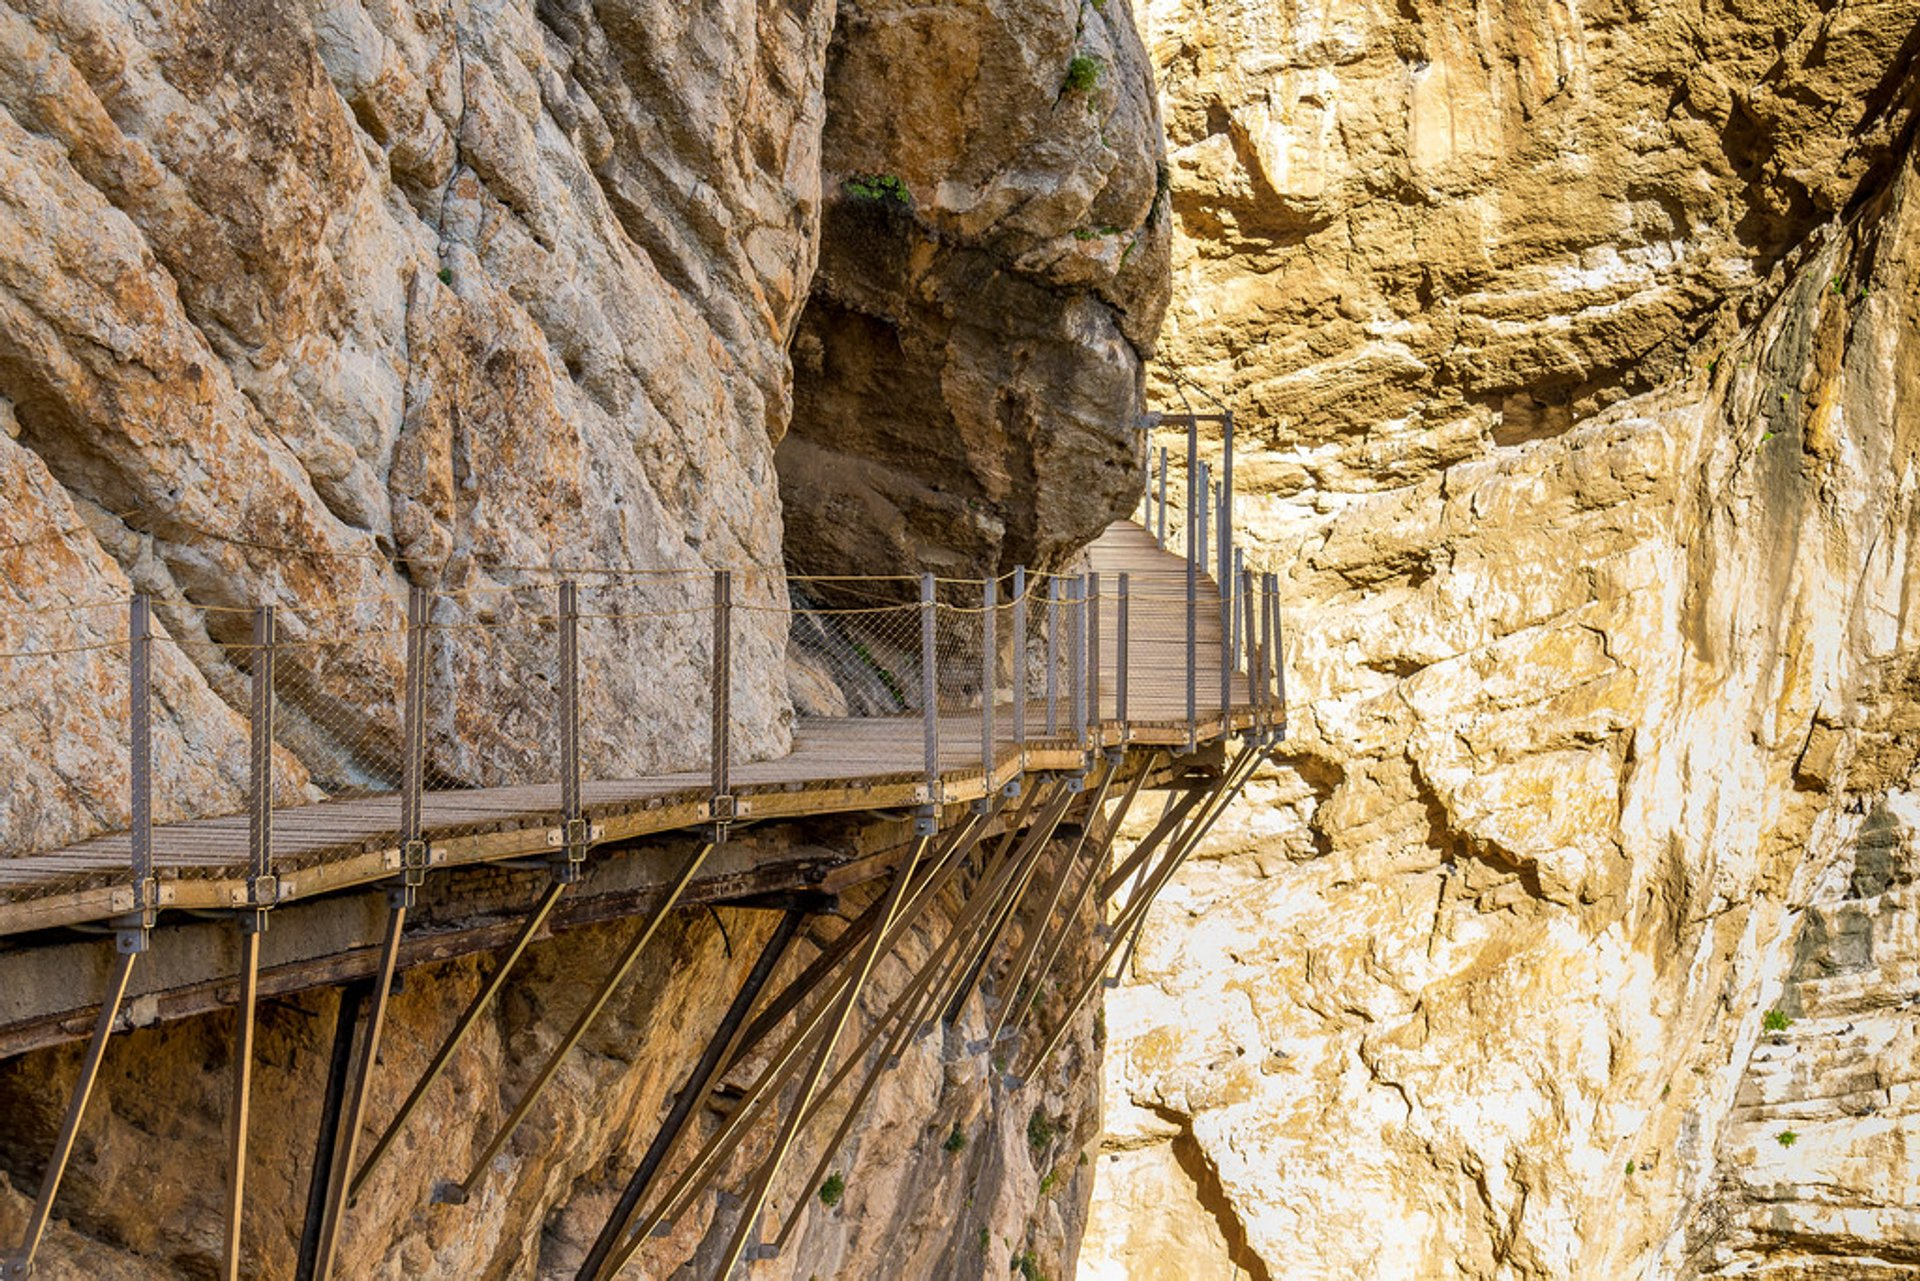 El Caminito Del Rey (King's Path) in Spain - Best Season 2020